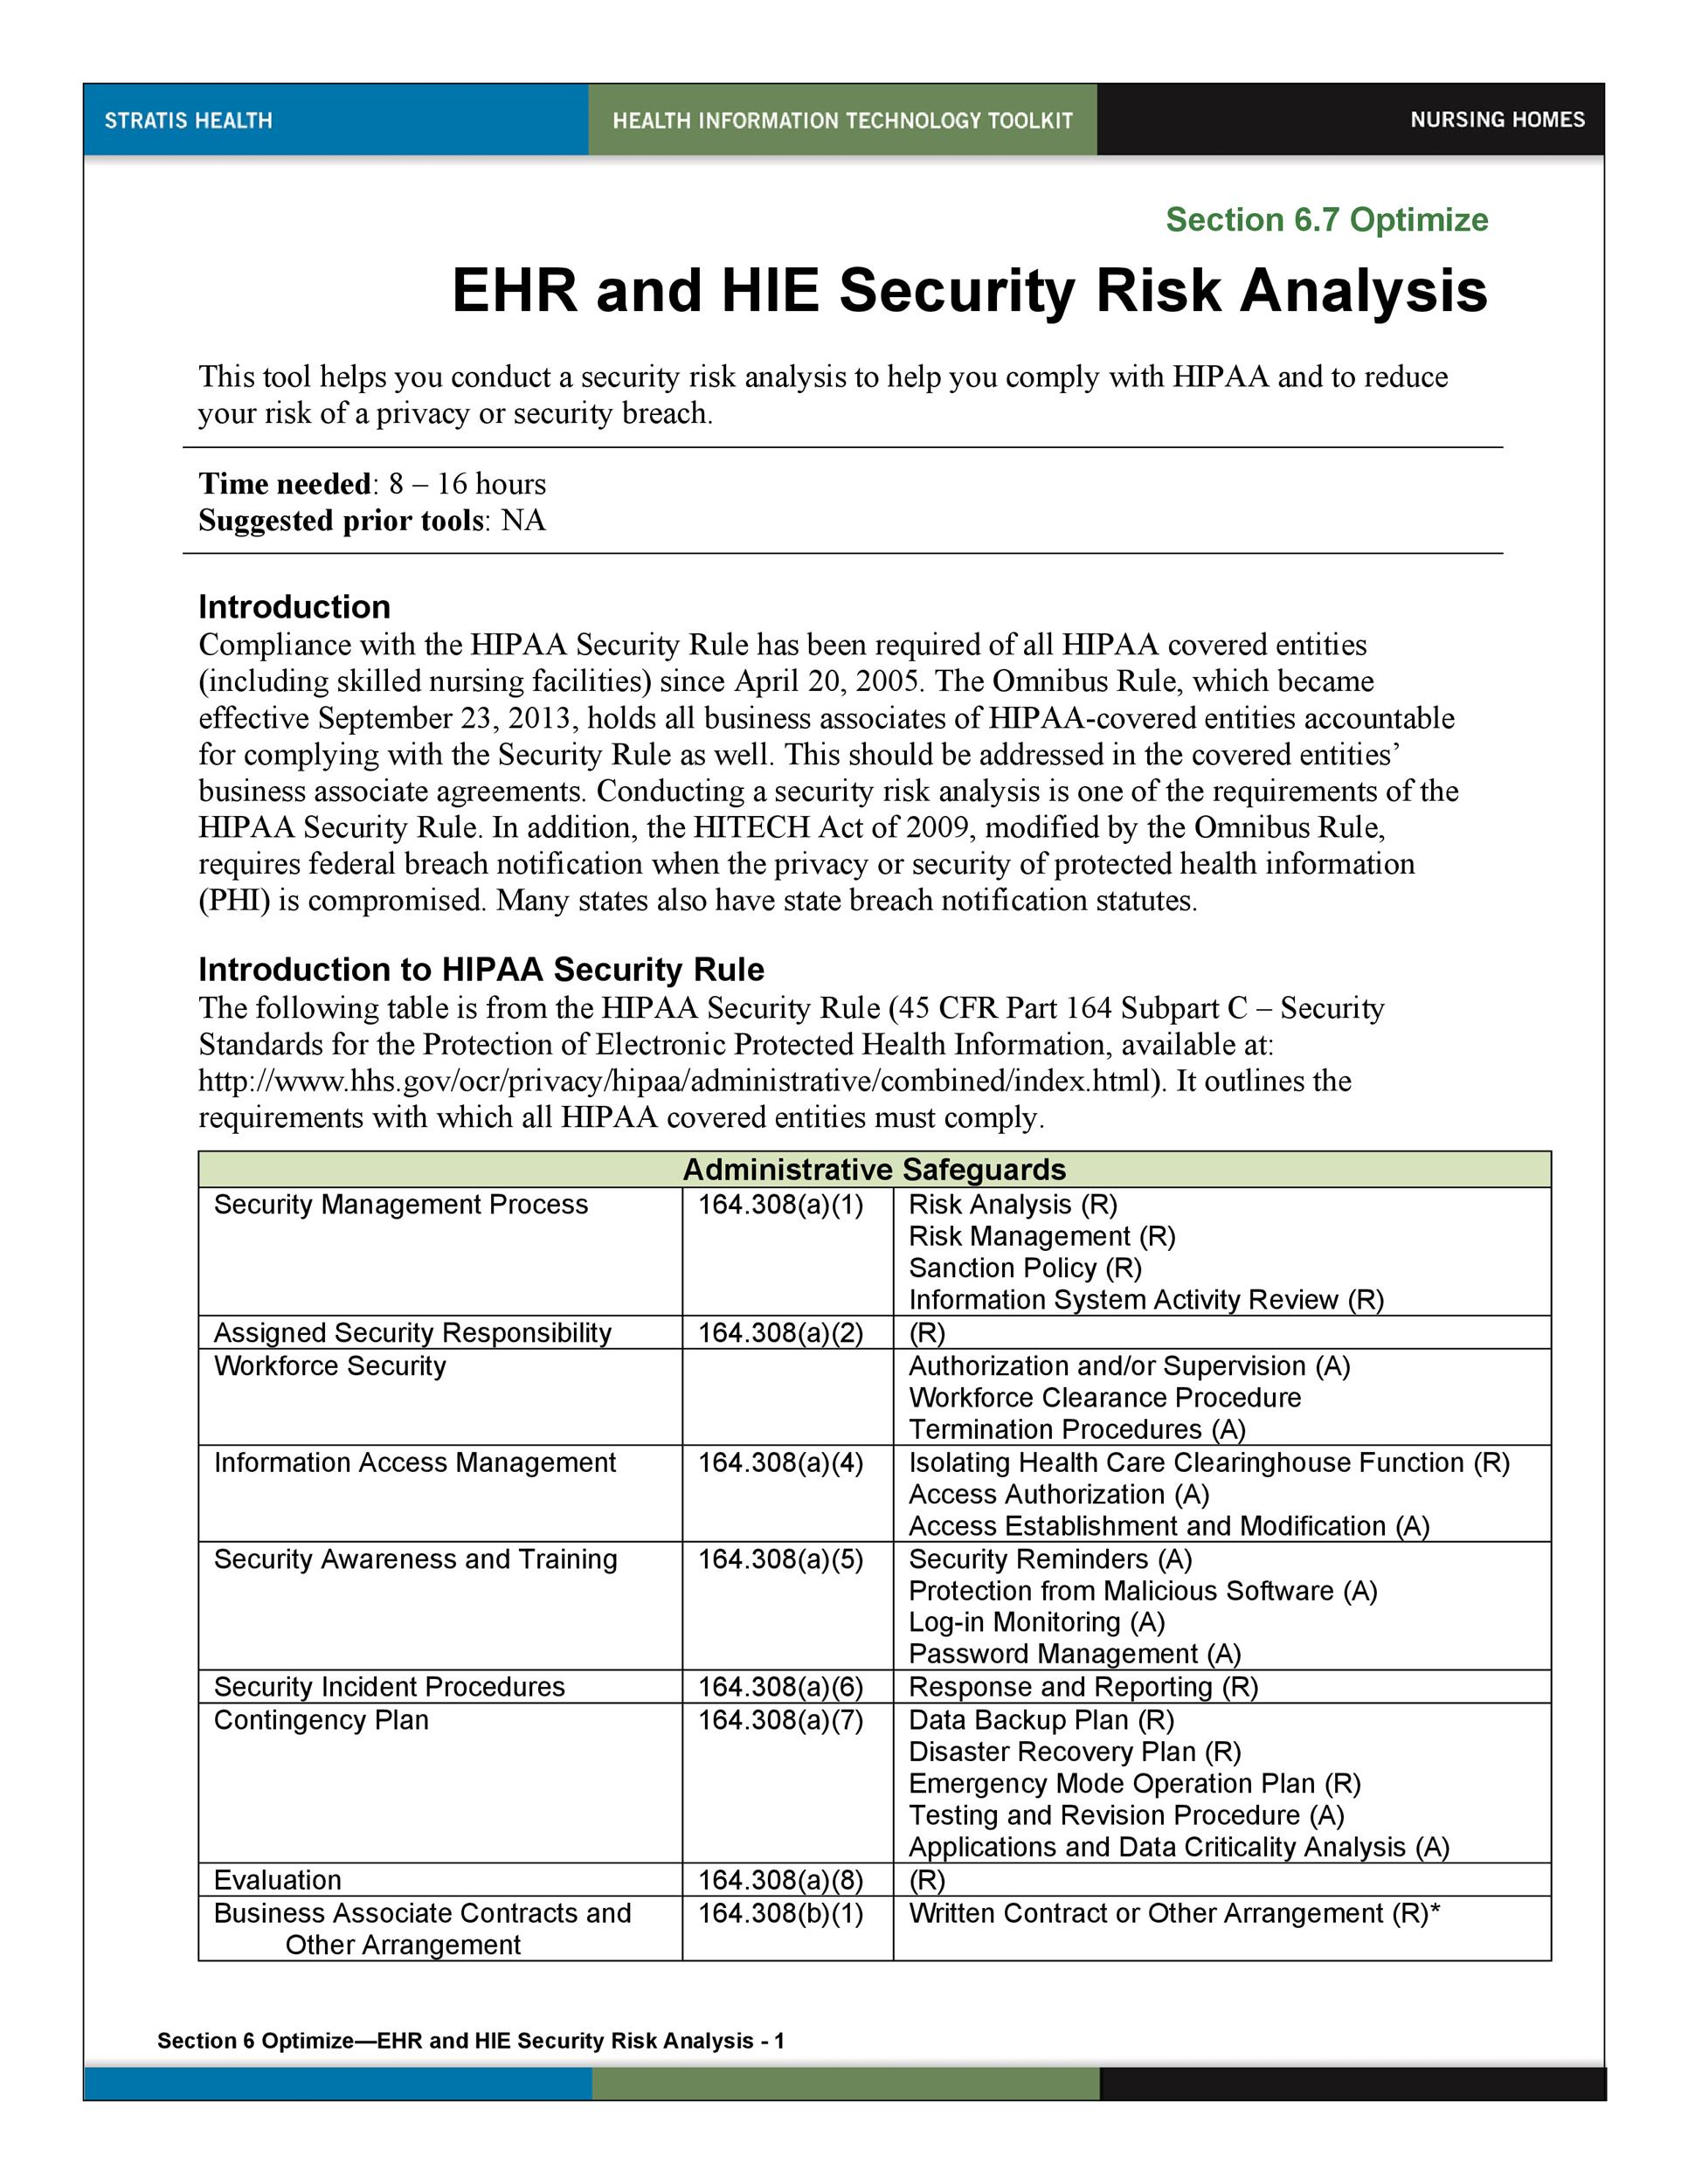 39 Free Risk Analysis Templates (+ Risk Assessment Matrix)